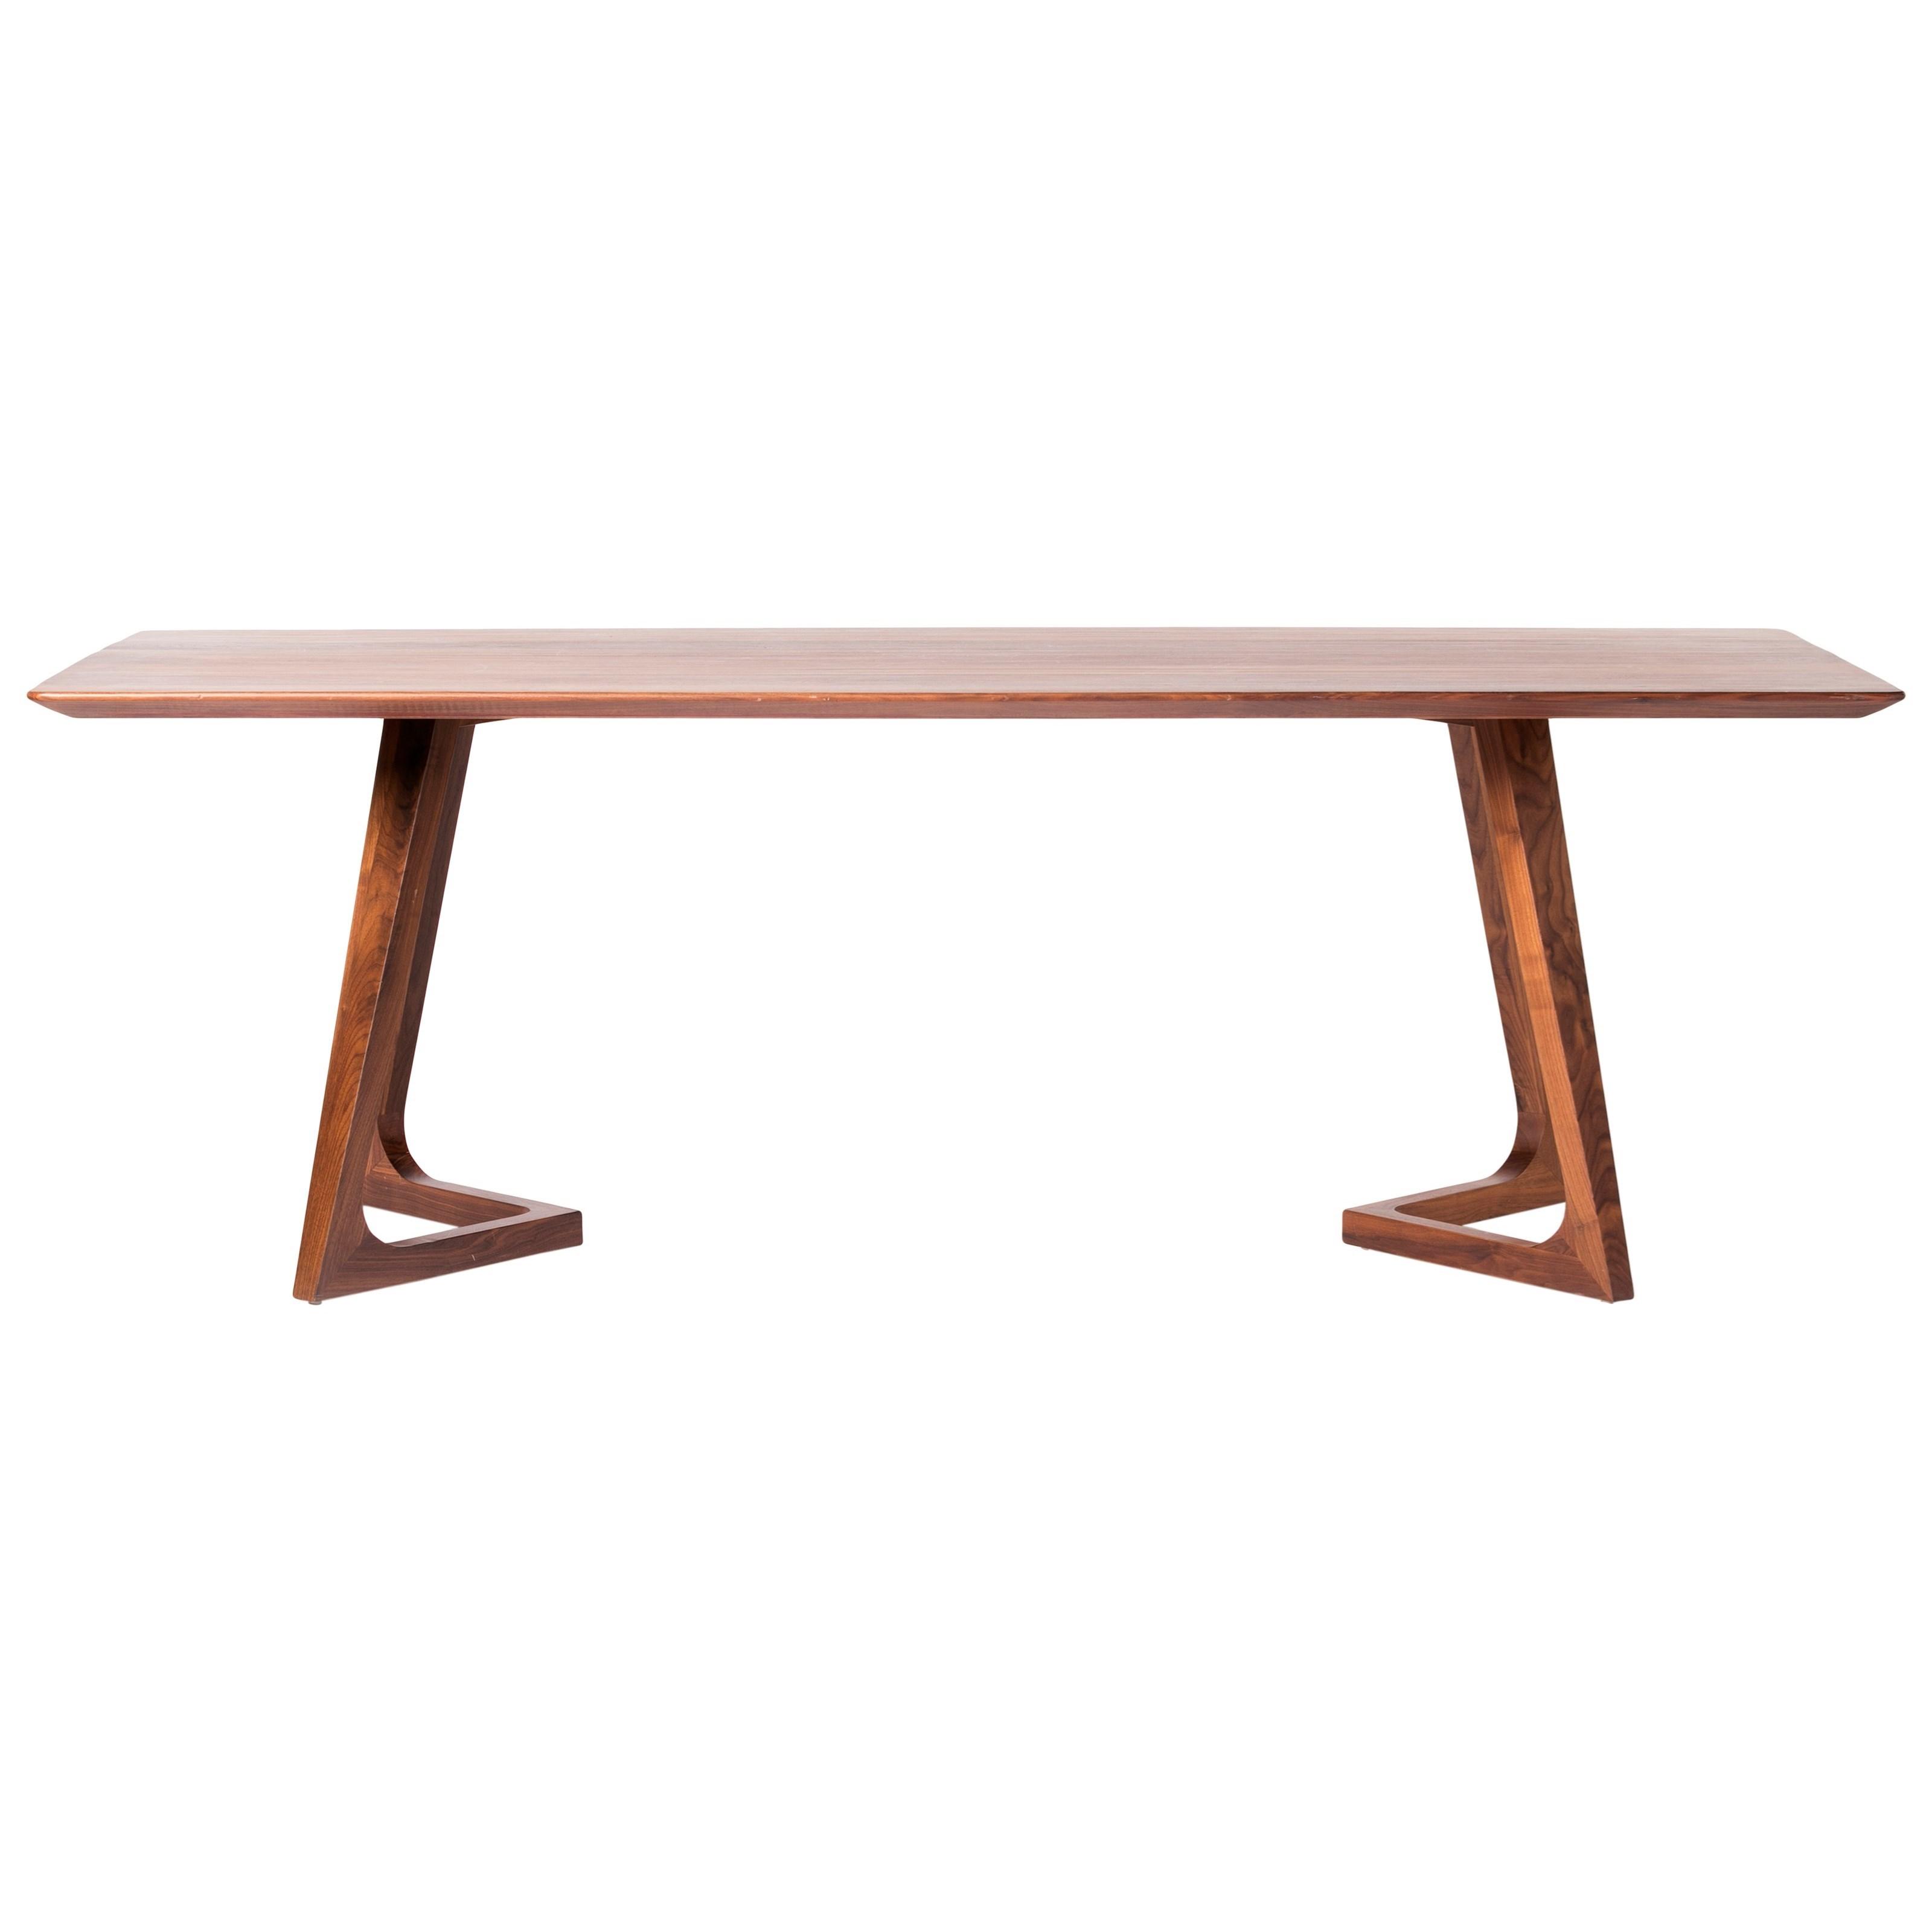 Godenza Rectangular Dining Table by Moe's Home Collection at Stoney Creek Furniture